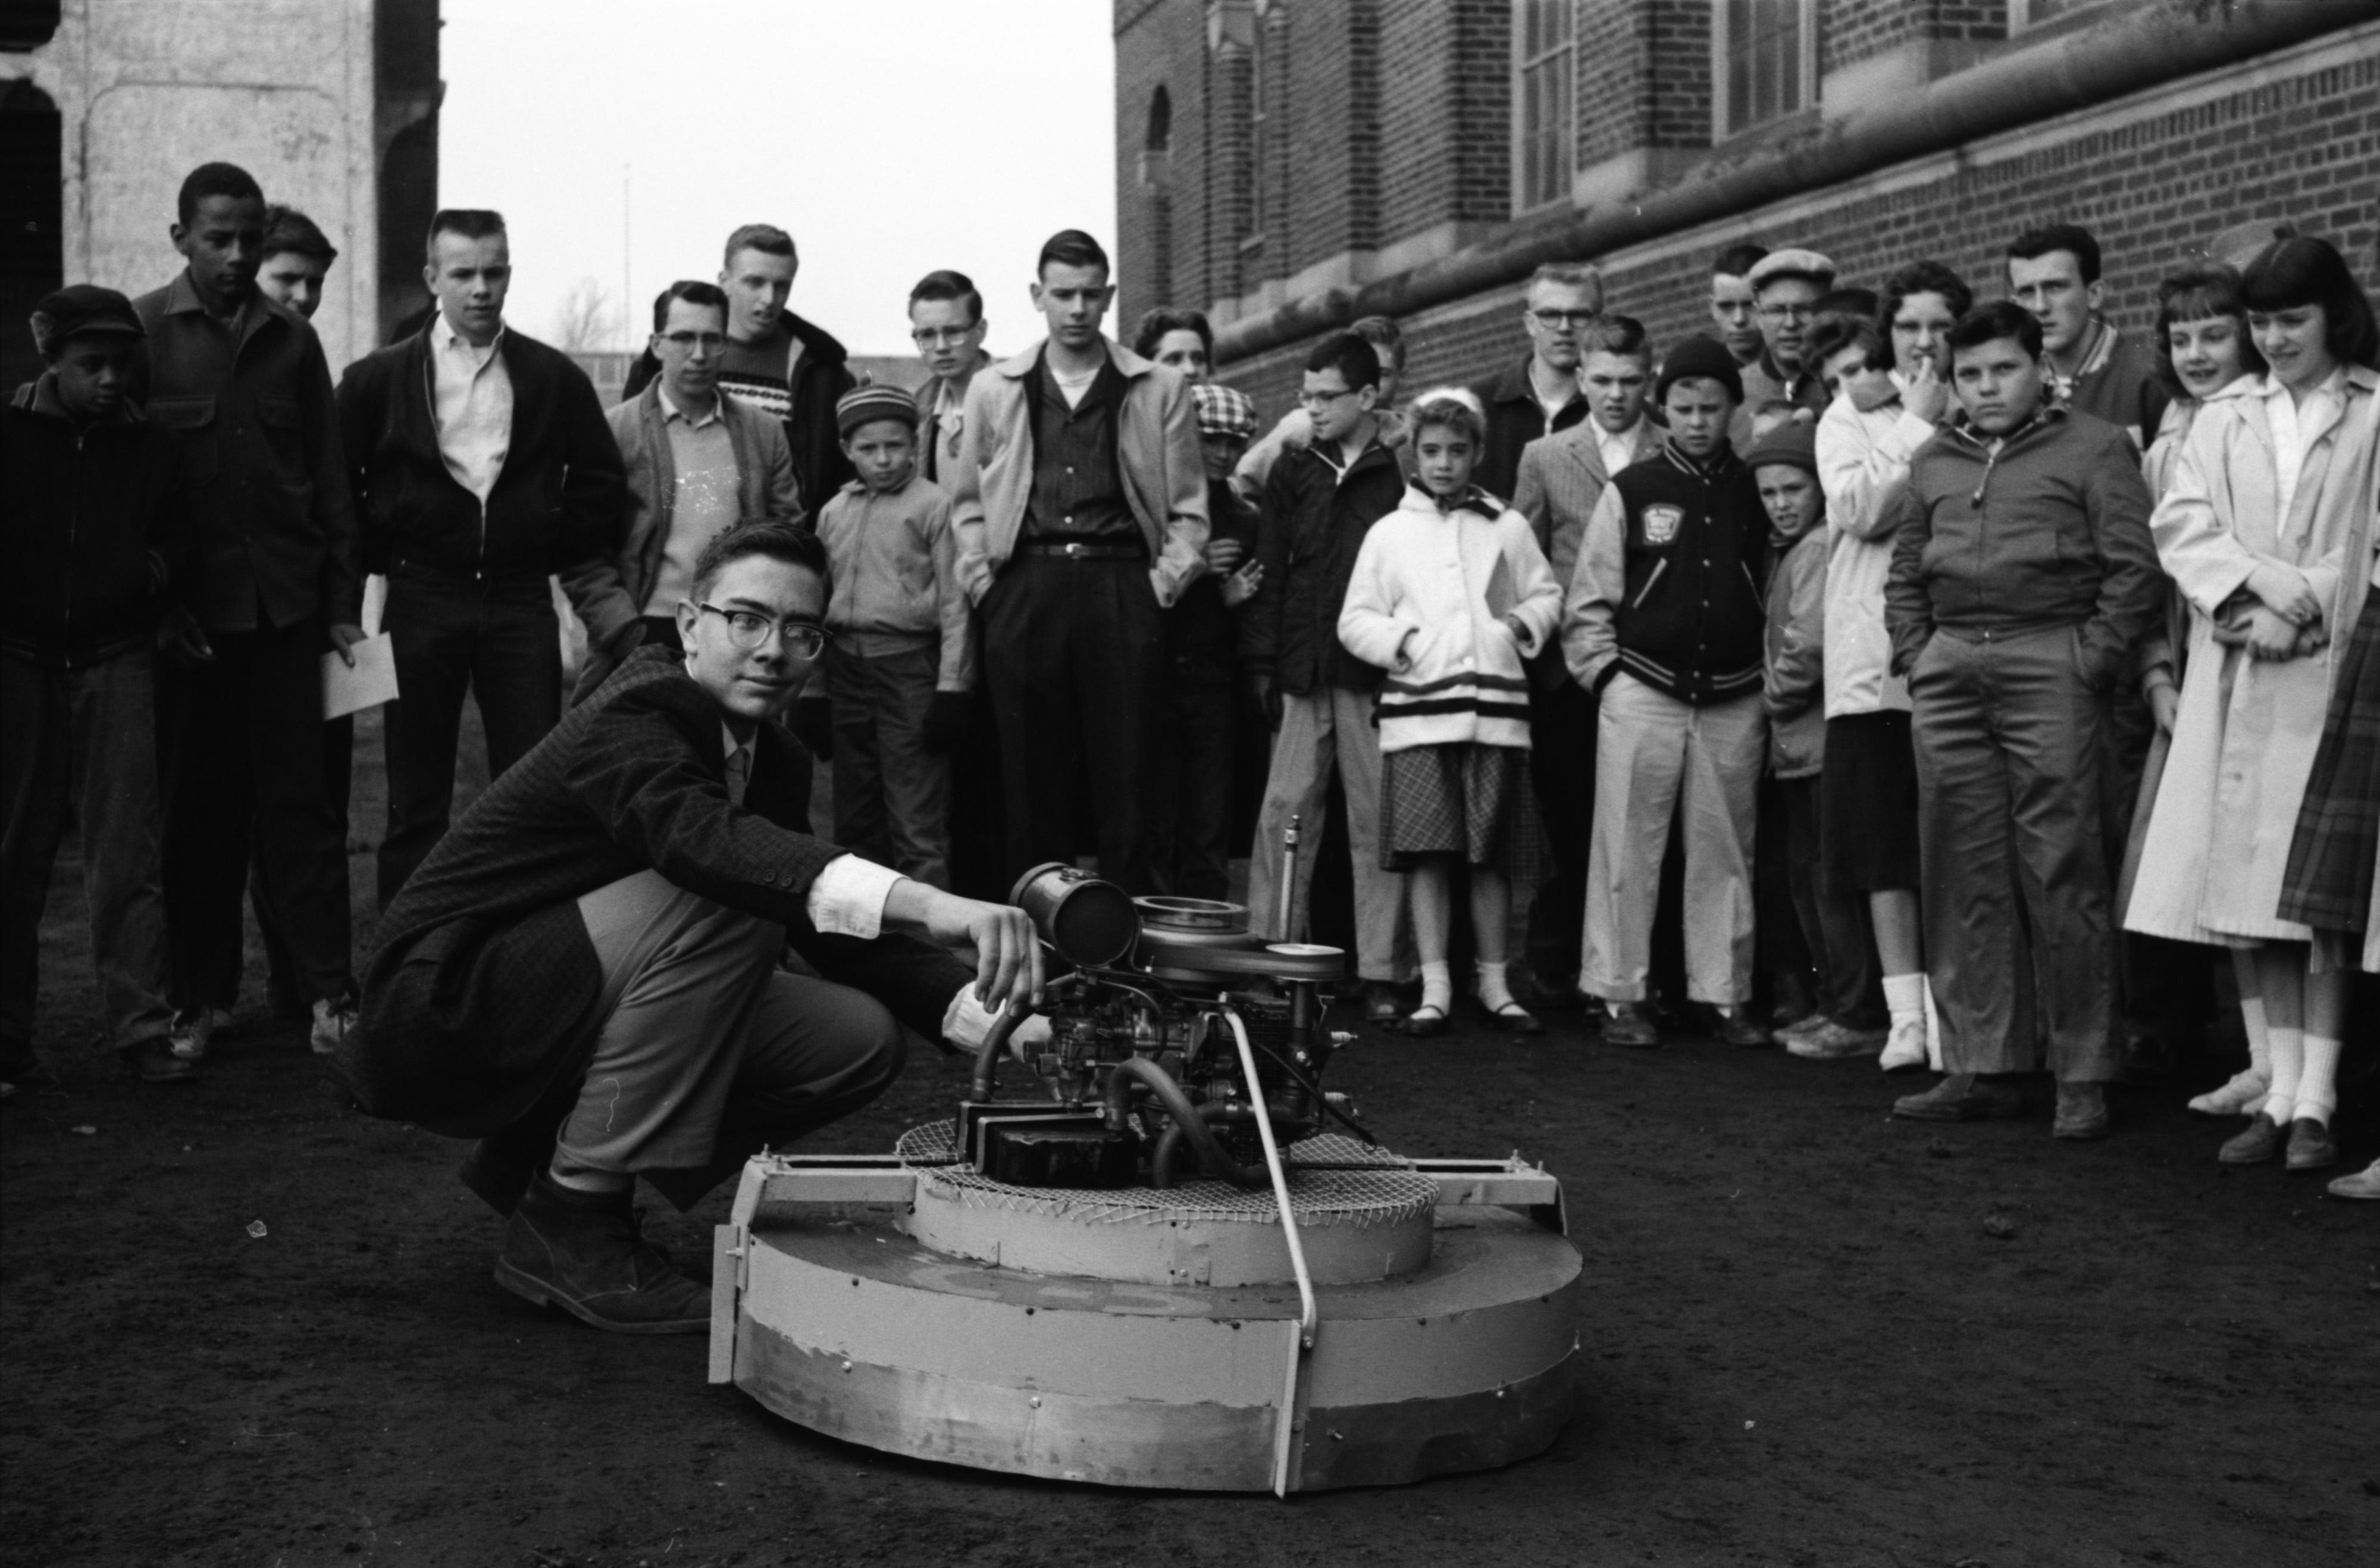 Don Cramer, of Ypsilanti, with his winning wheelless transportation device, at the Science Fair, April 1960 image